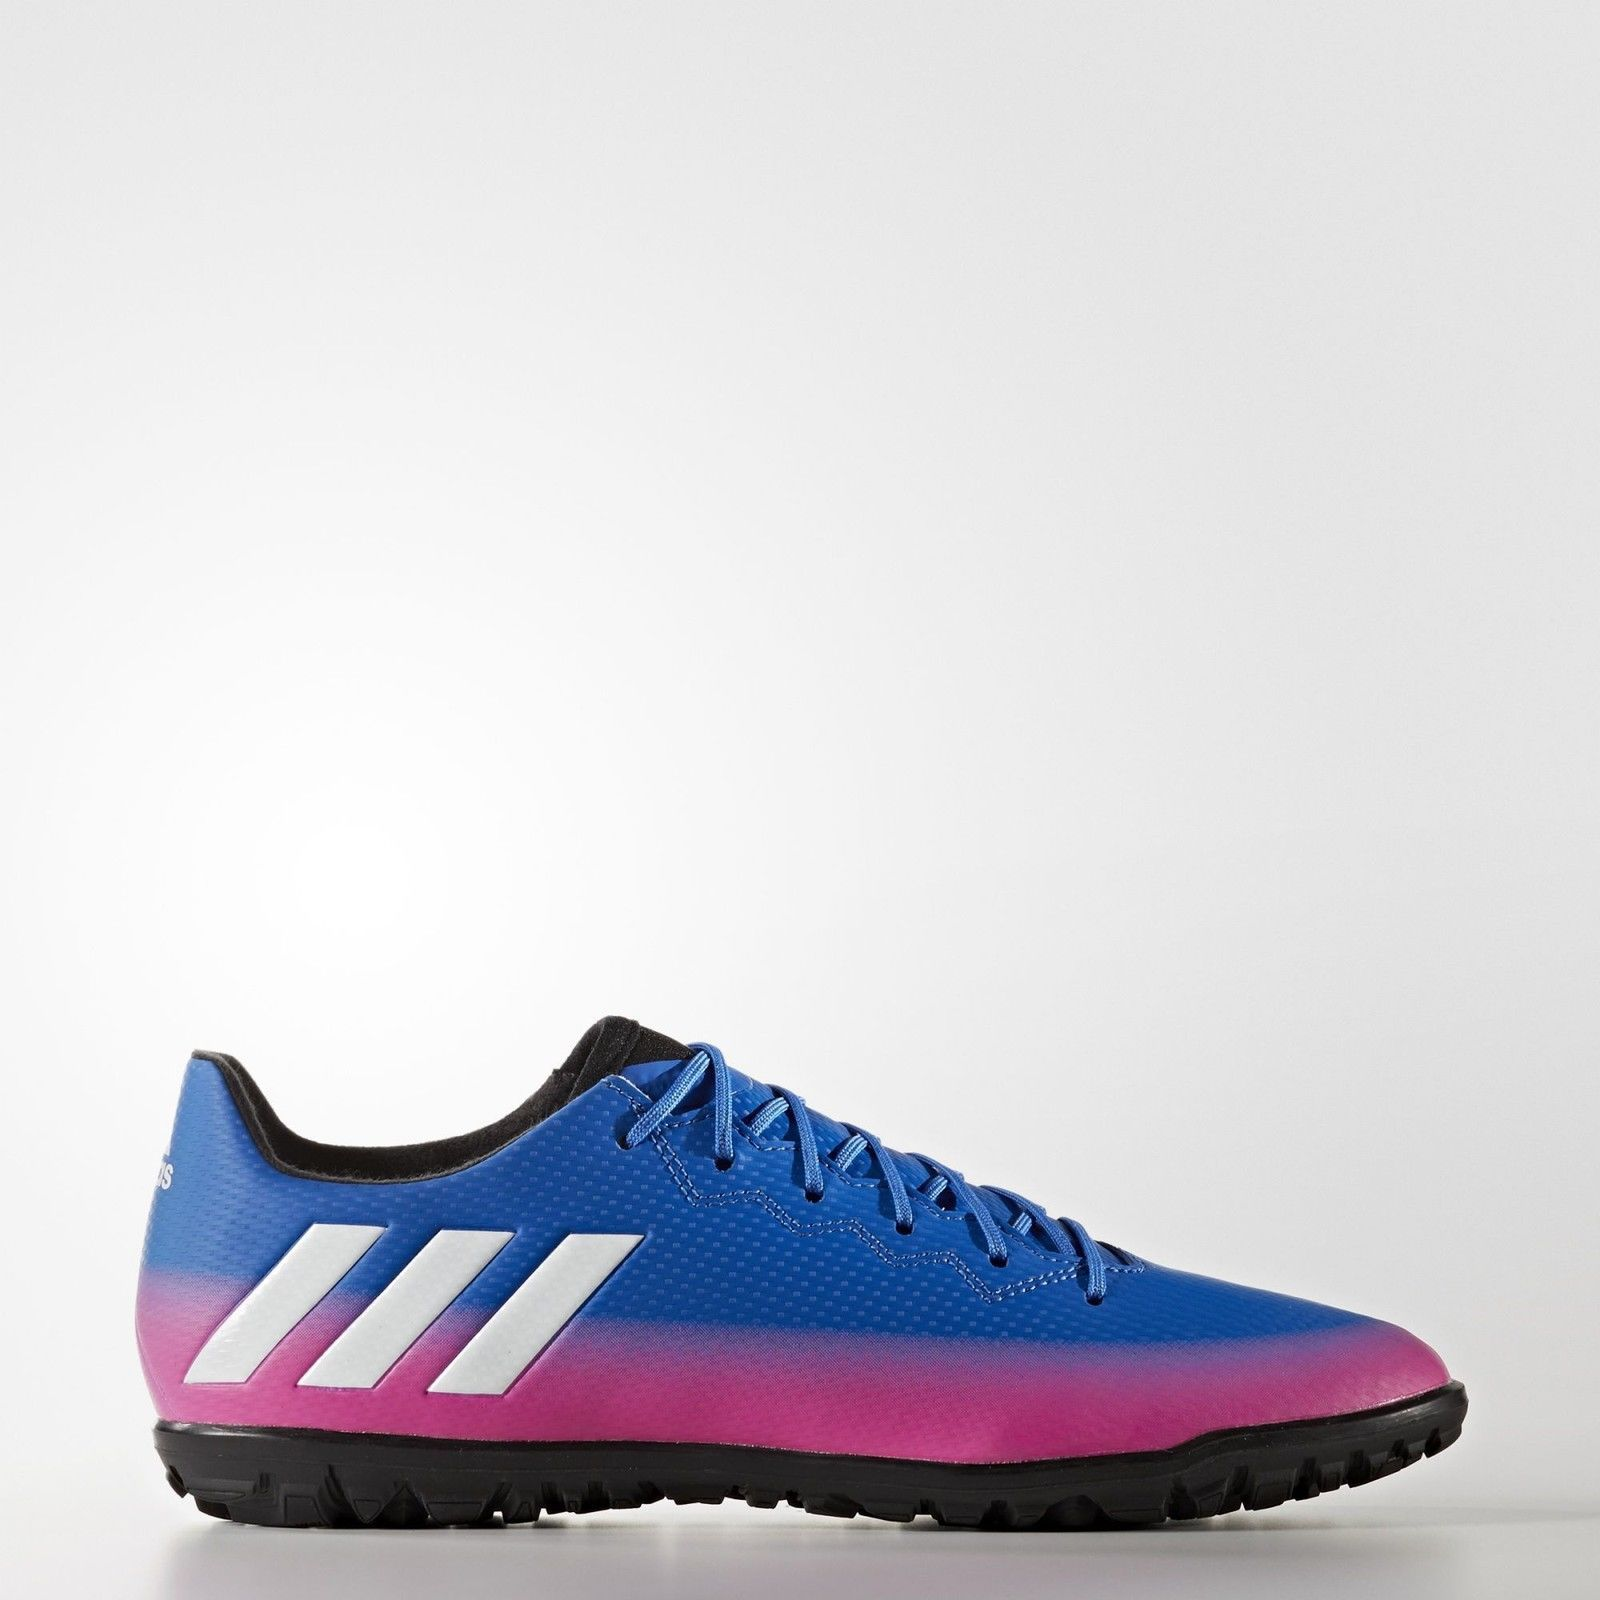 Adidas Messi 16.3 Turf Shoes Men'S Blue